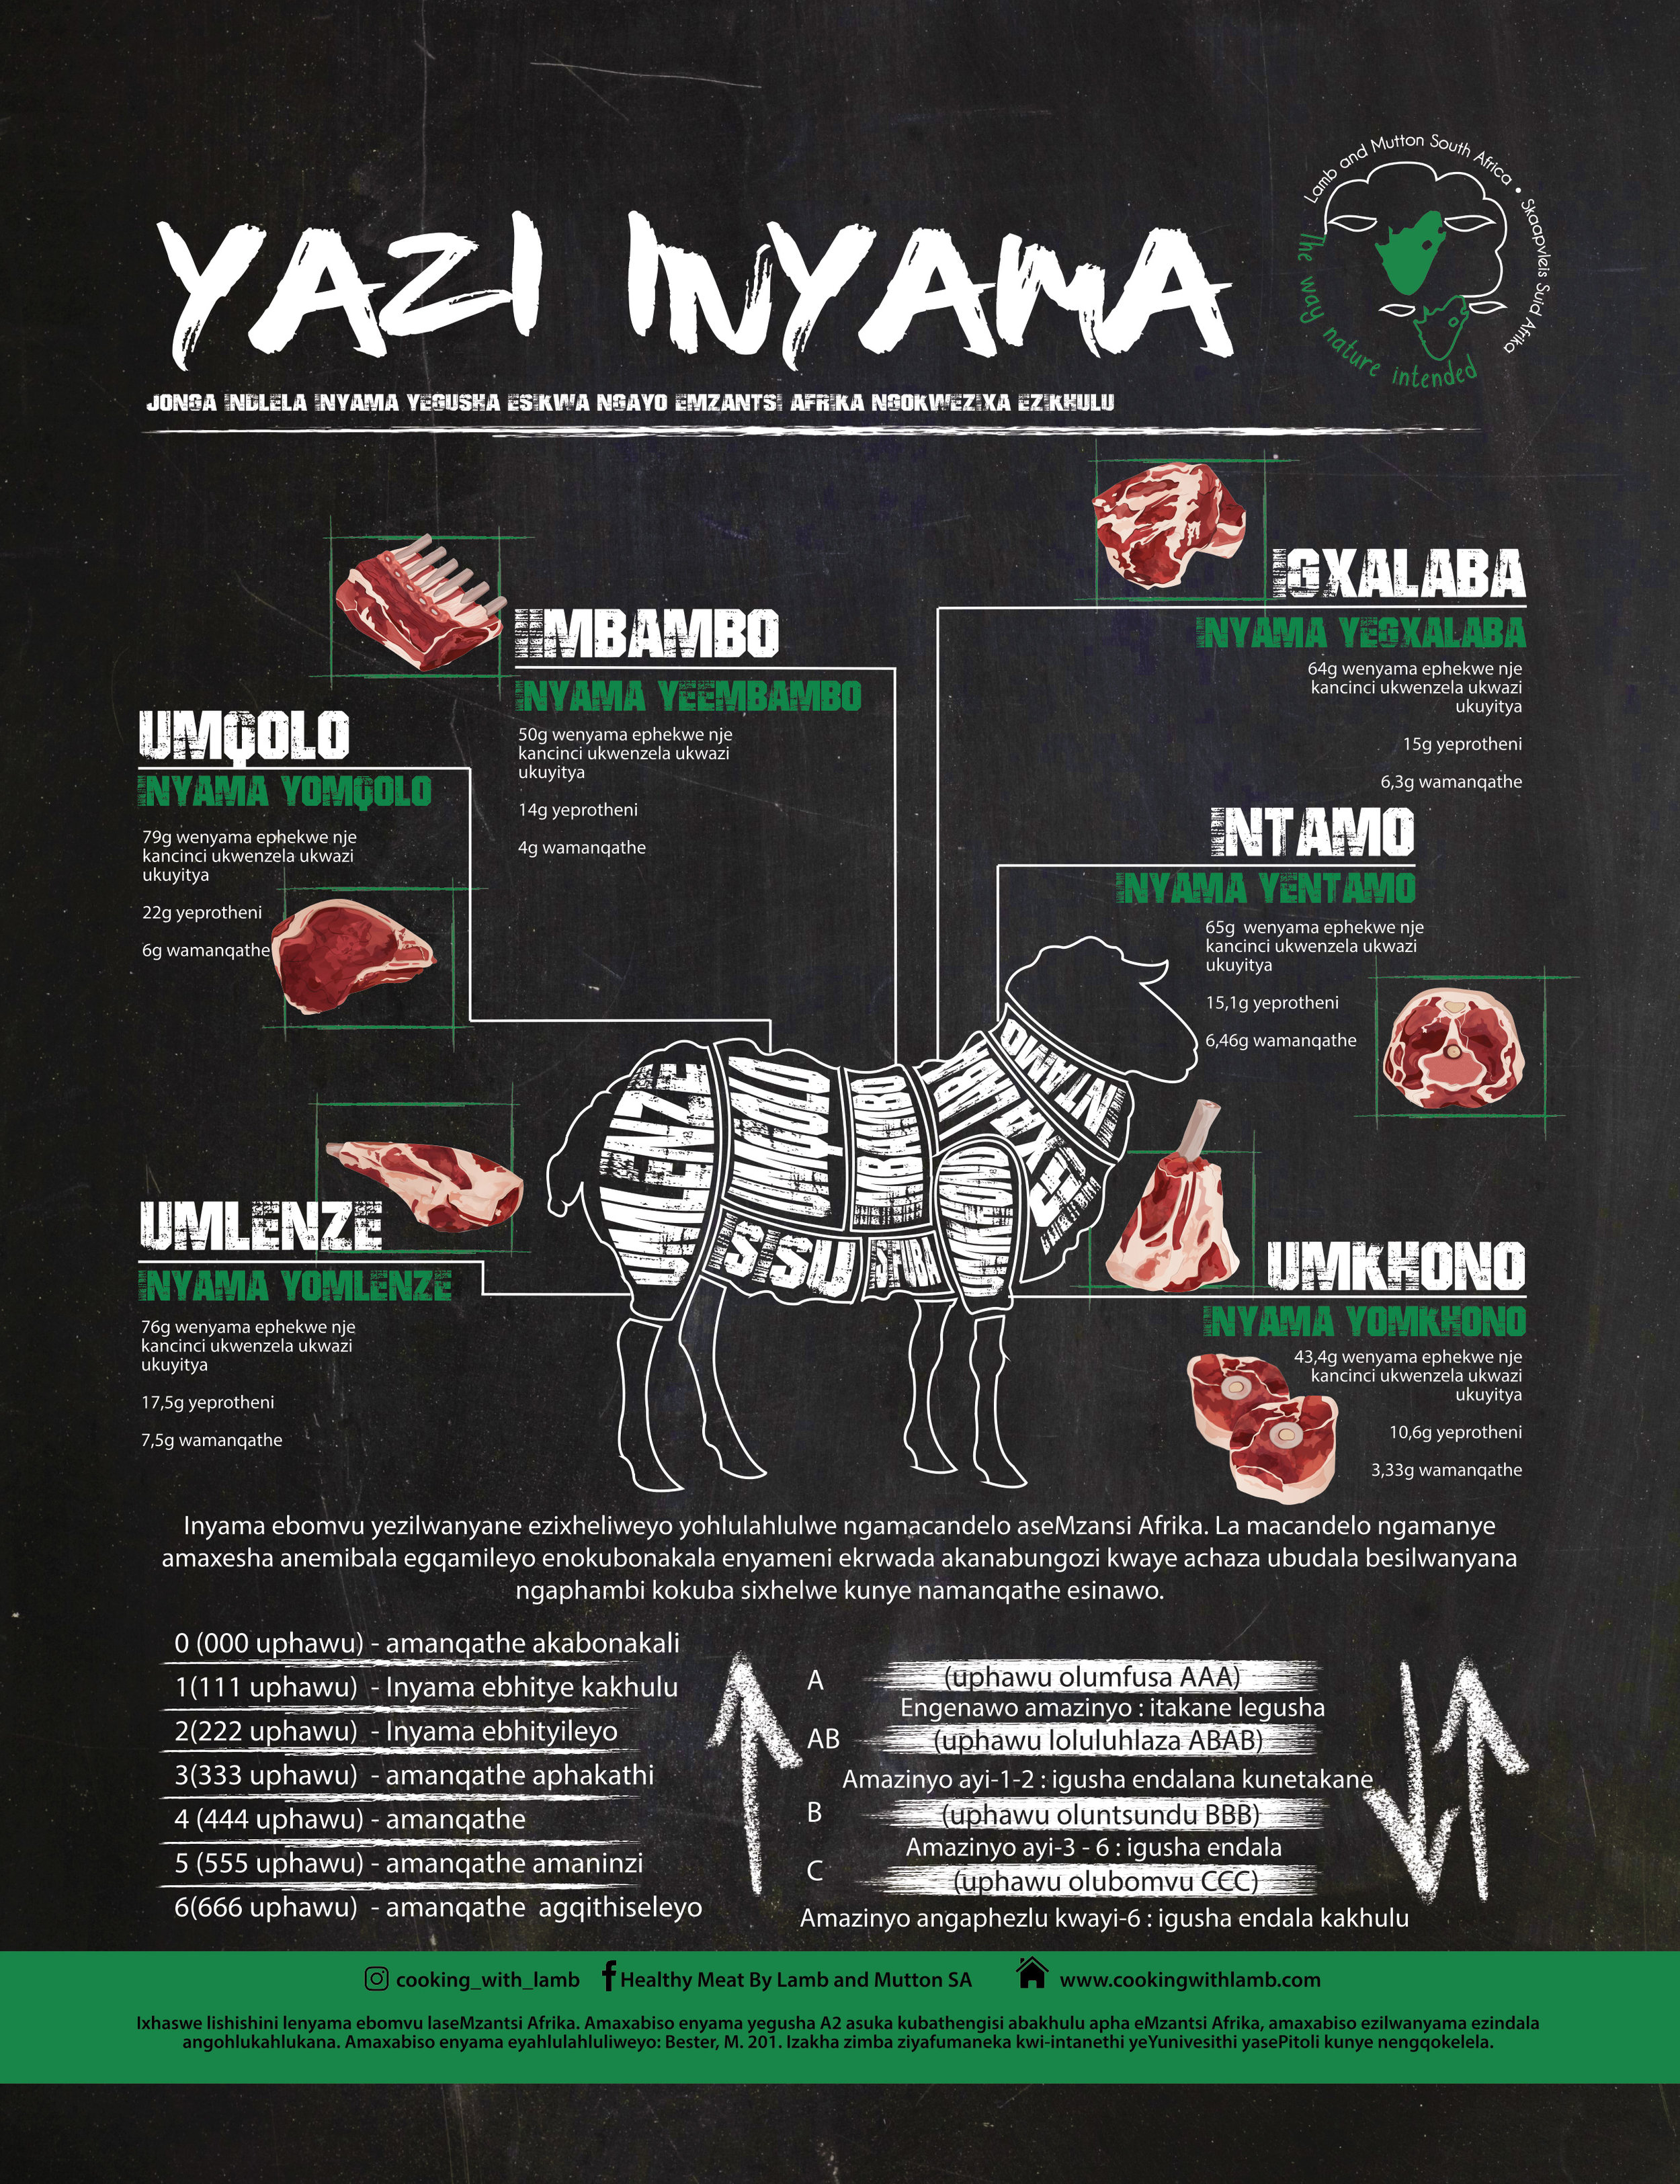 Click on the image to download the Xhosa version